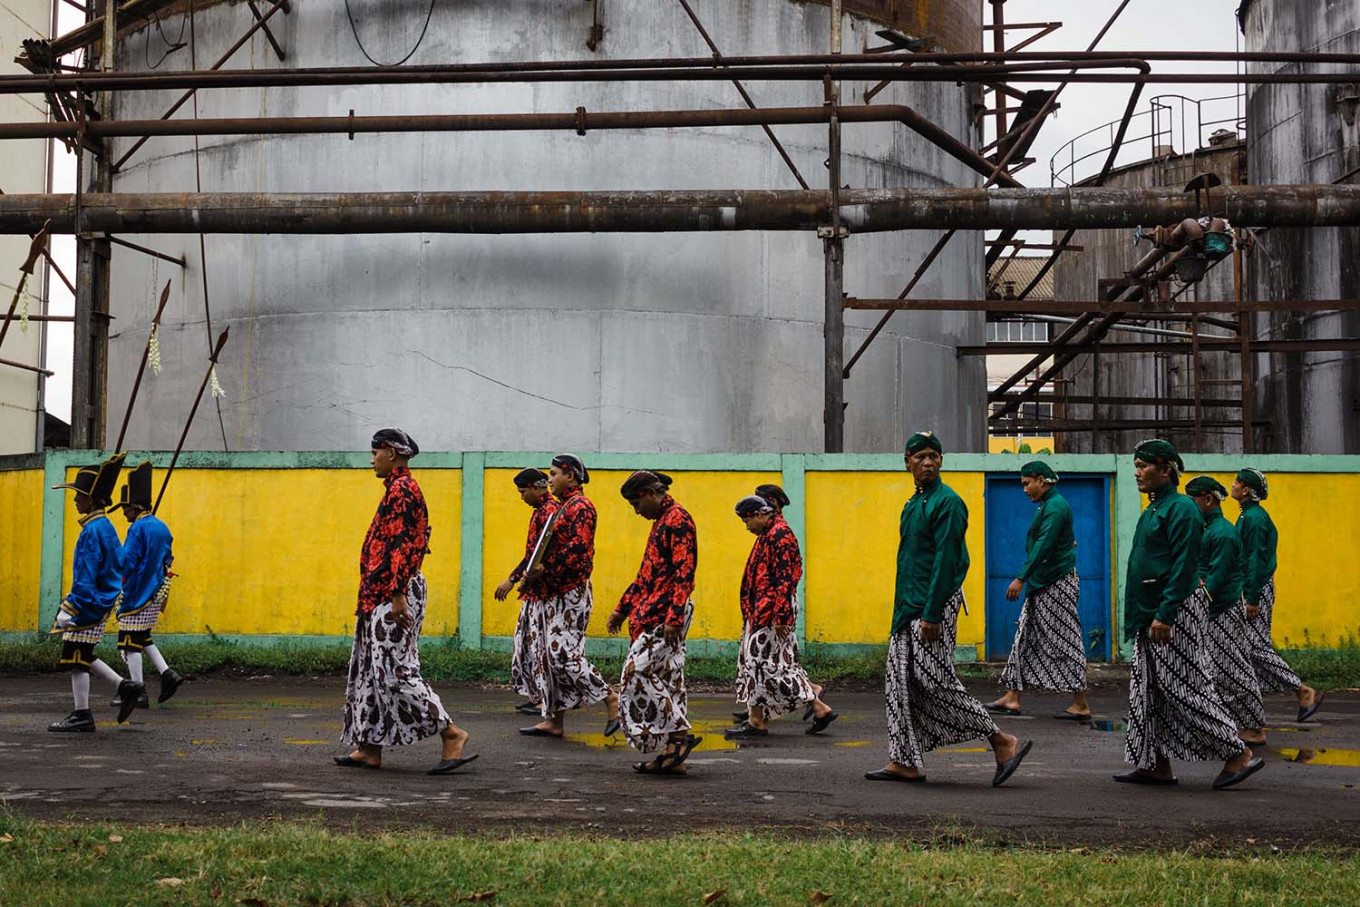 Villagers in traditional attire enter the Madukismo factory compound. JP/Anggertimur Lanang